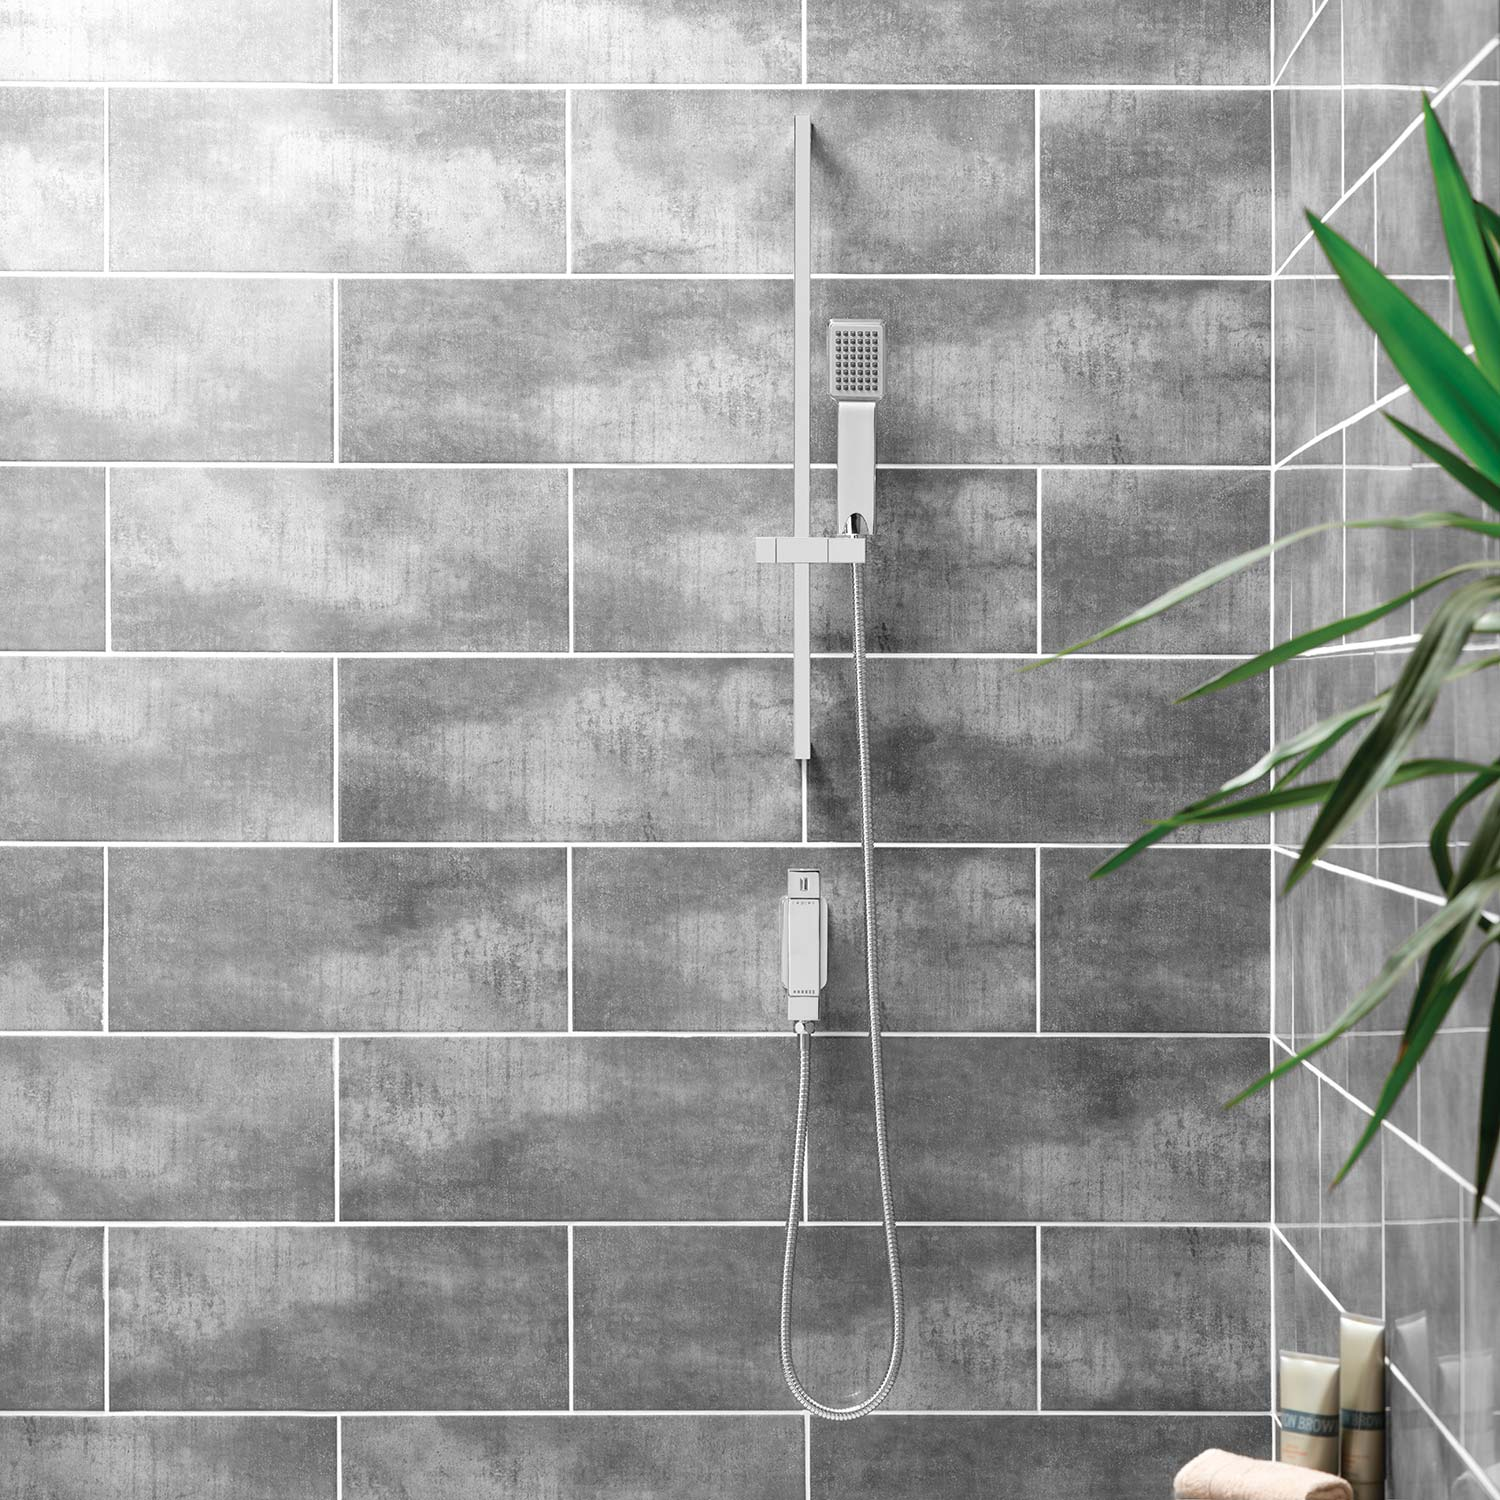 A Slide rail shower kit on a large brown tiled wall with a green plant in the foreground.